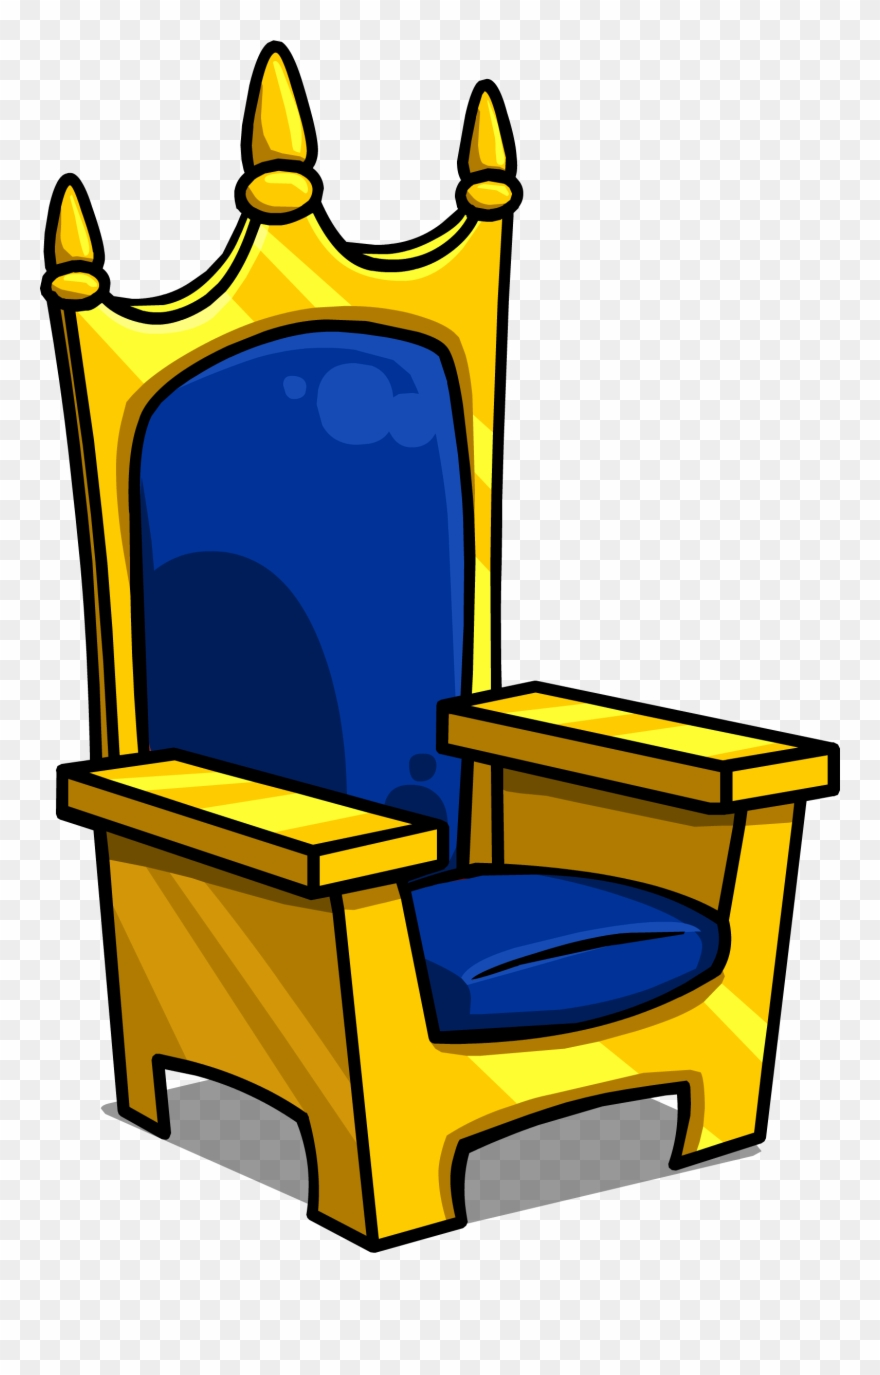 Throne images clipart vector library download Royal Throne Id 849 Sprite 008 - Throne Clipart (#678470 ... vector library download